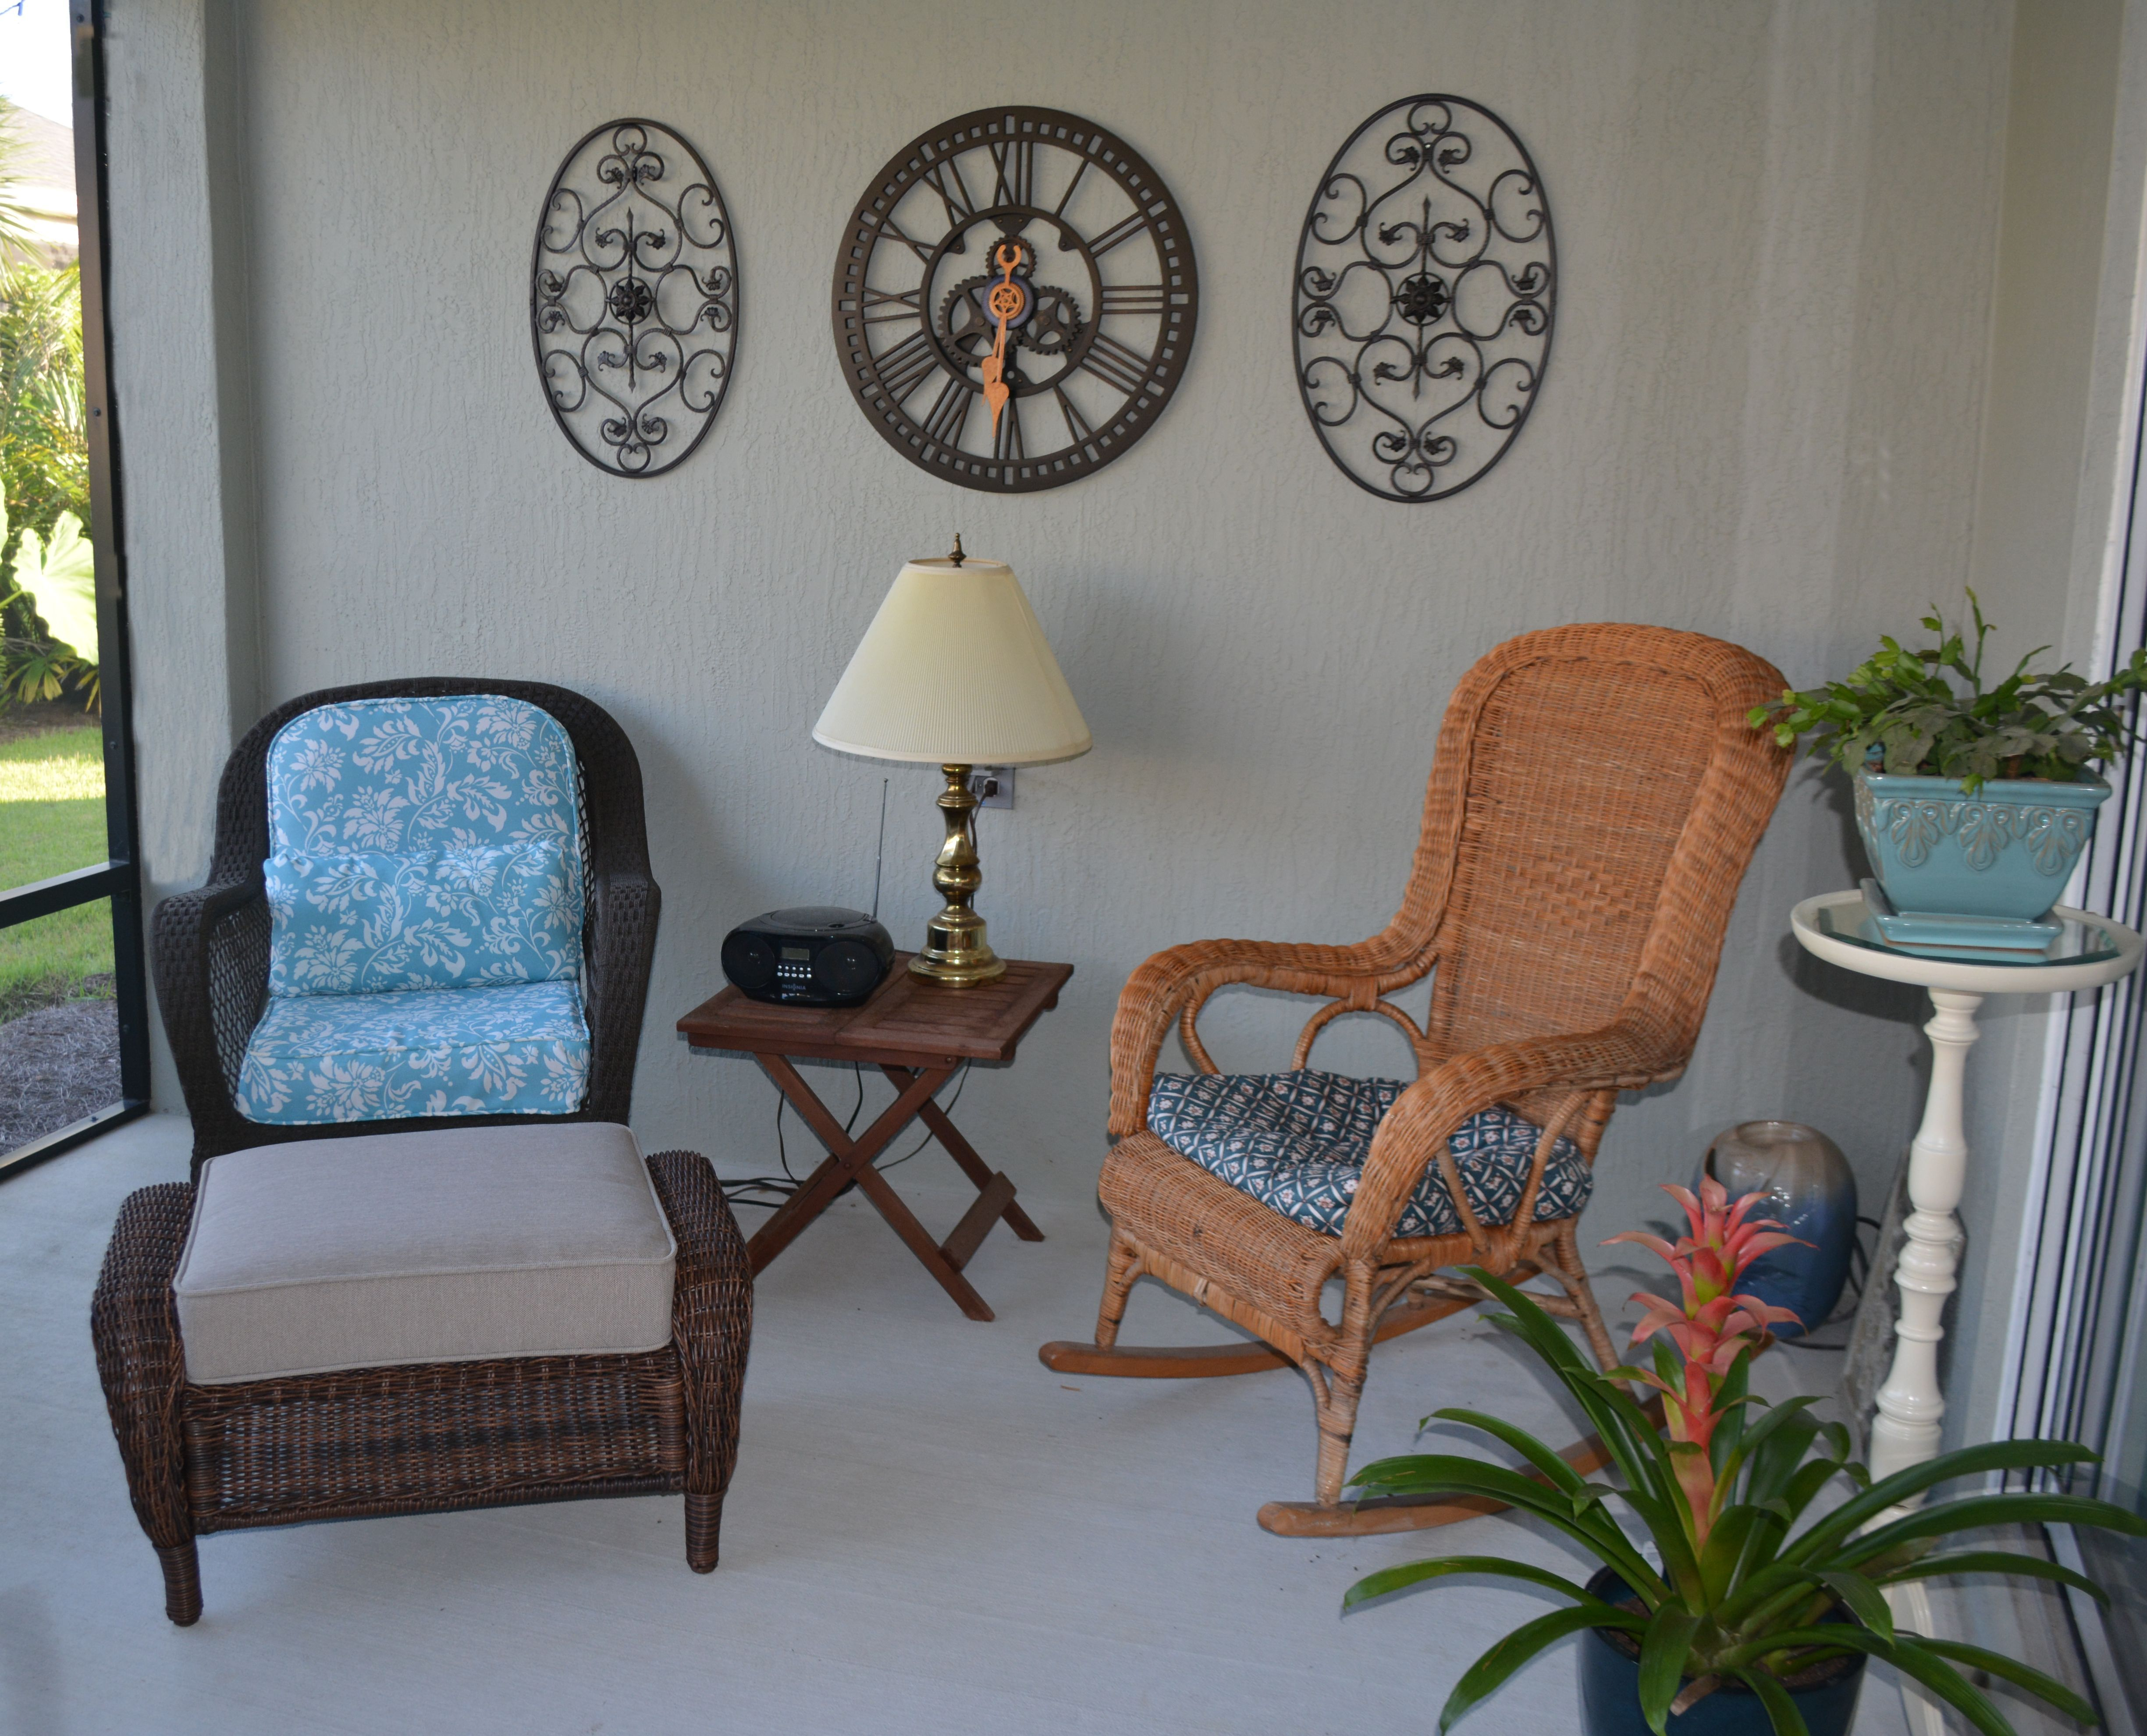 I Finally Finished Re covering Our Patio Furniture